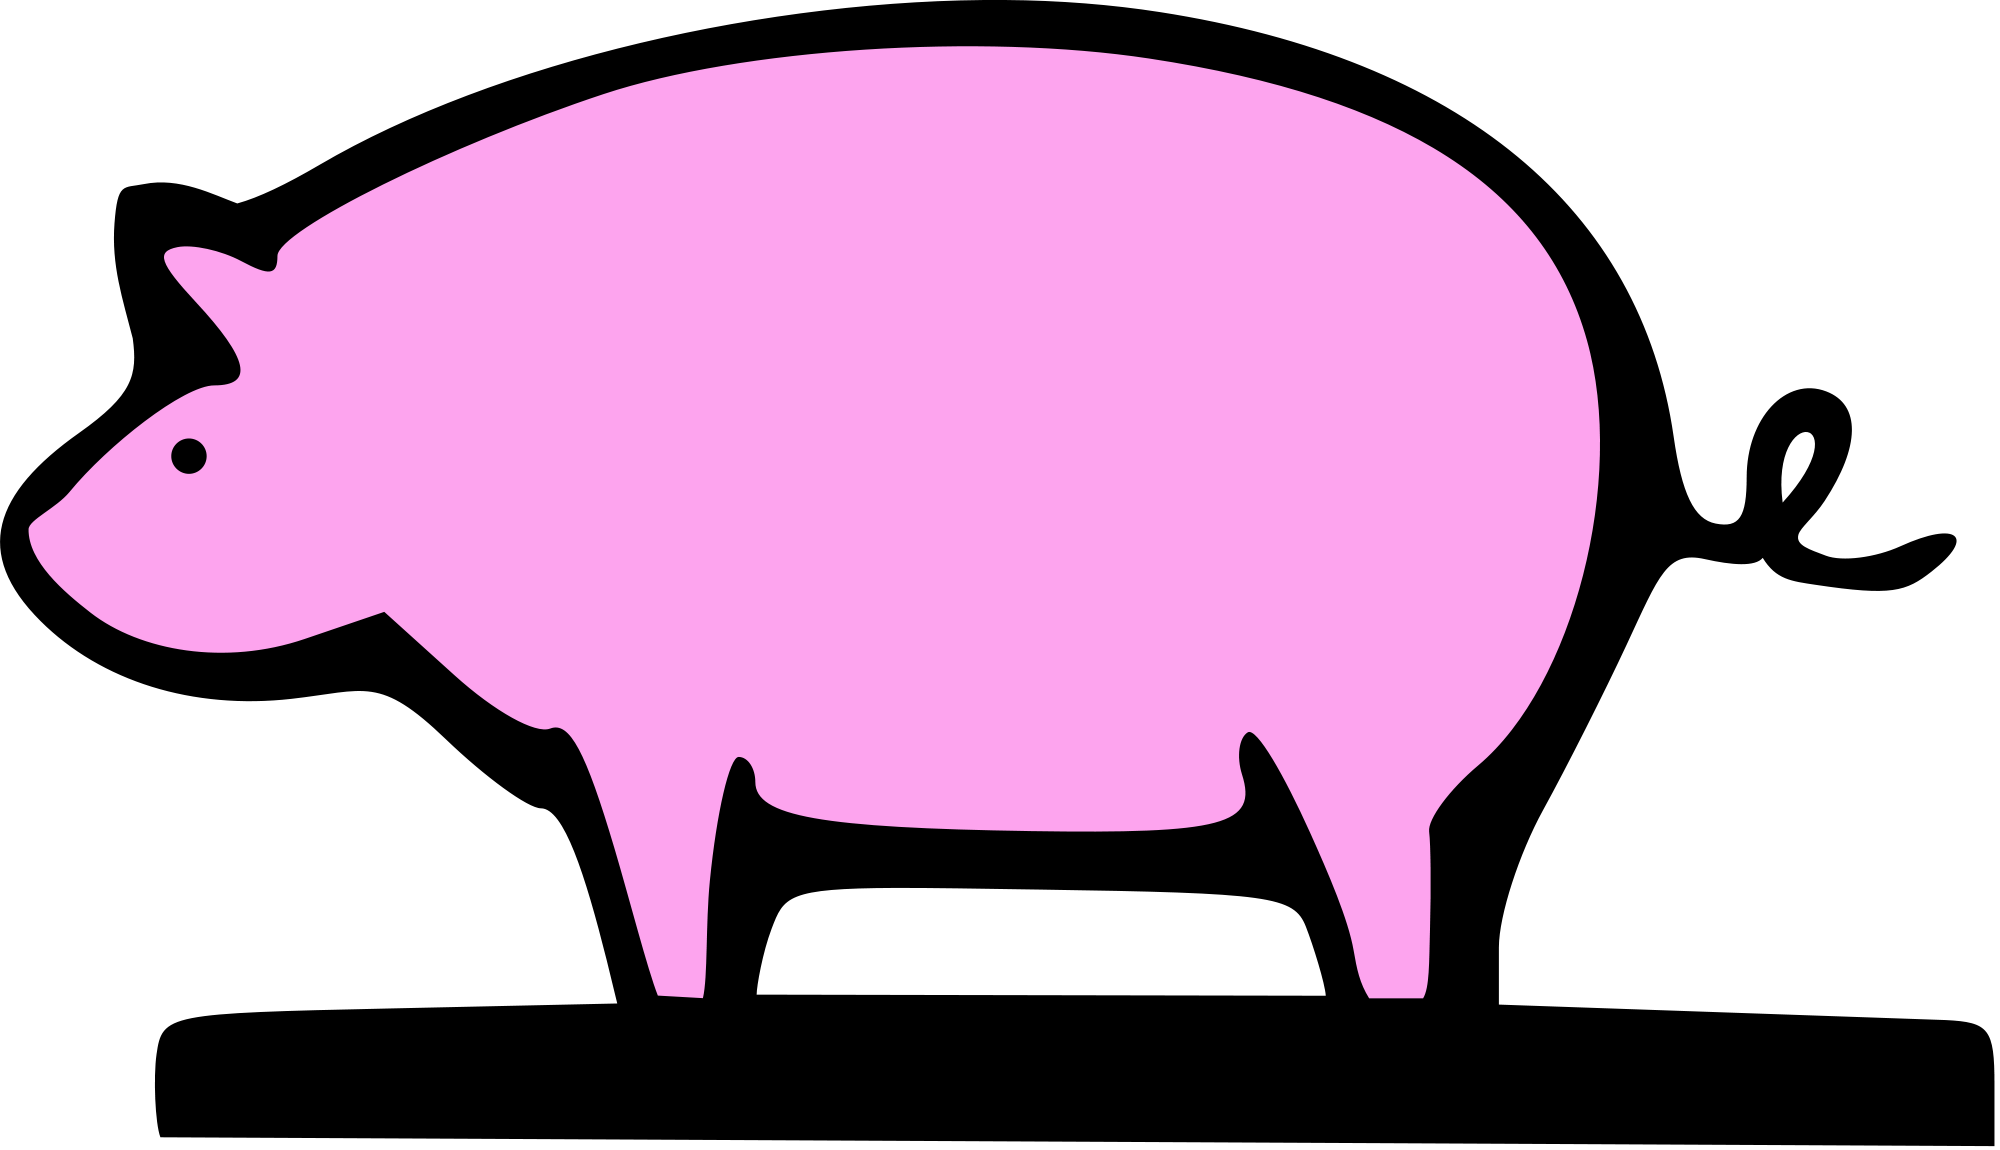 France clipart animated. Pig cliparts shop of